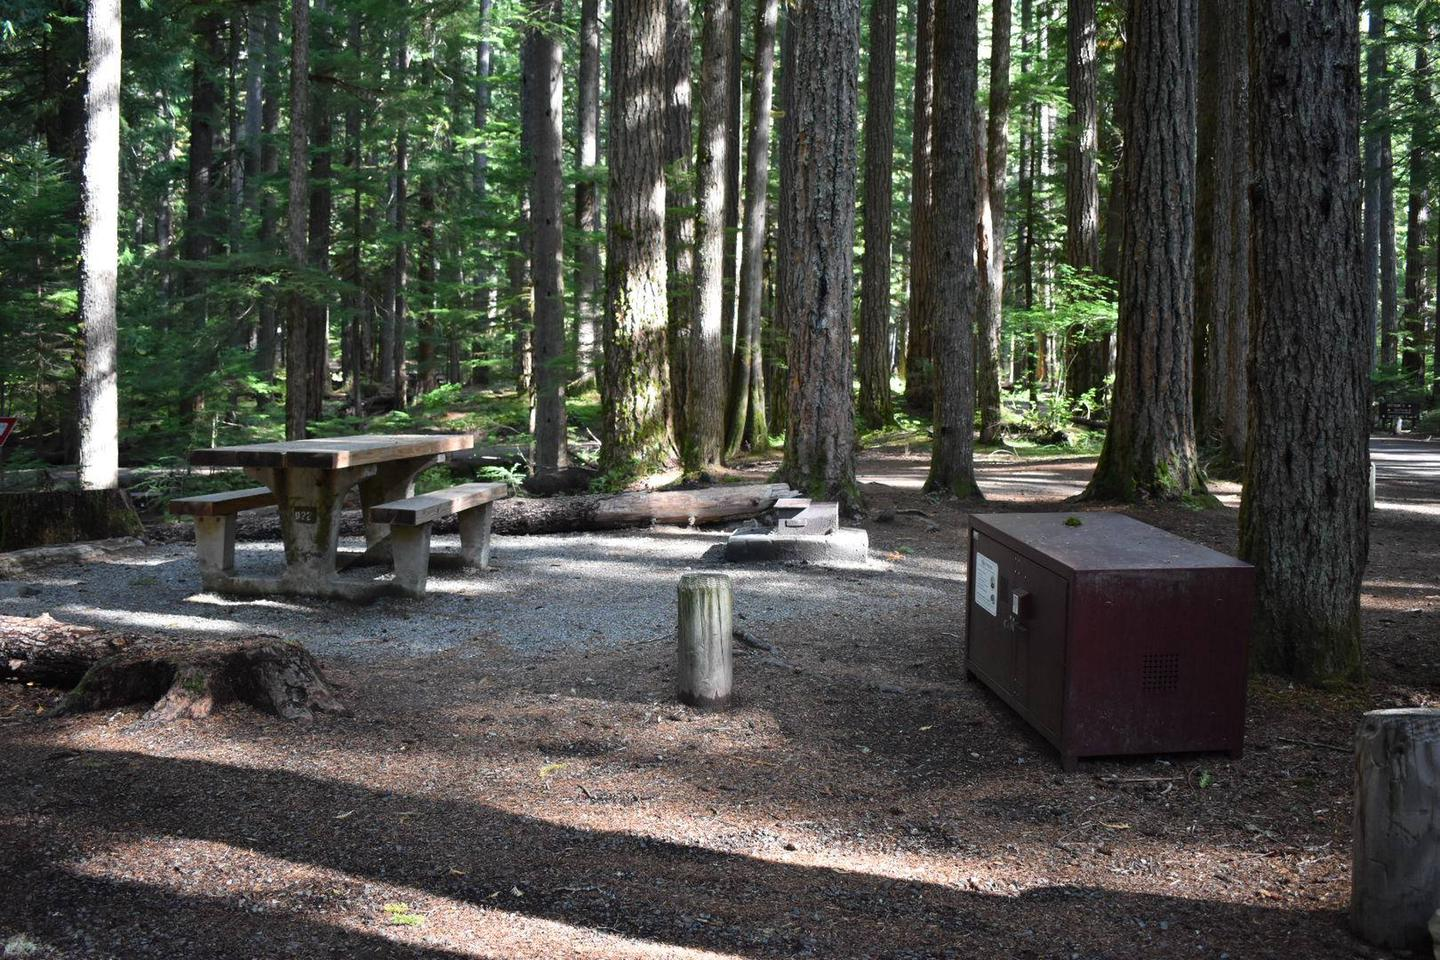 Ohanapecosh Campground - Site D022 AmenitiesCampers are provided with a picnic table, food storage box, and fire pit.